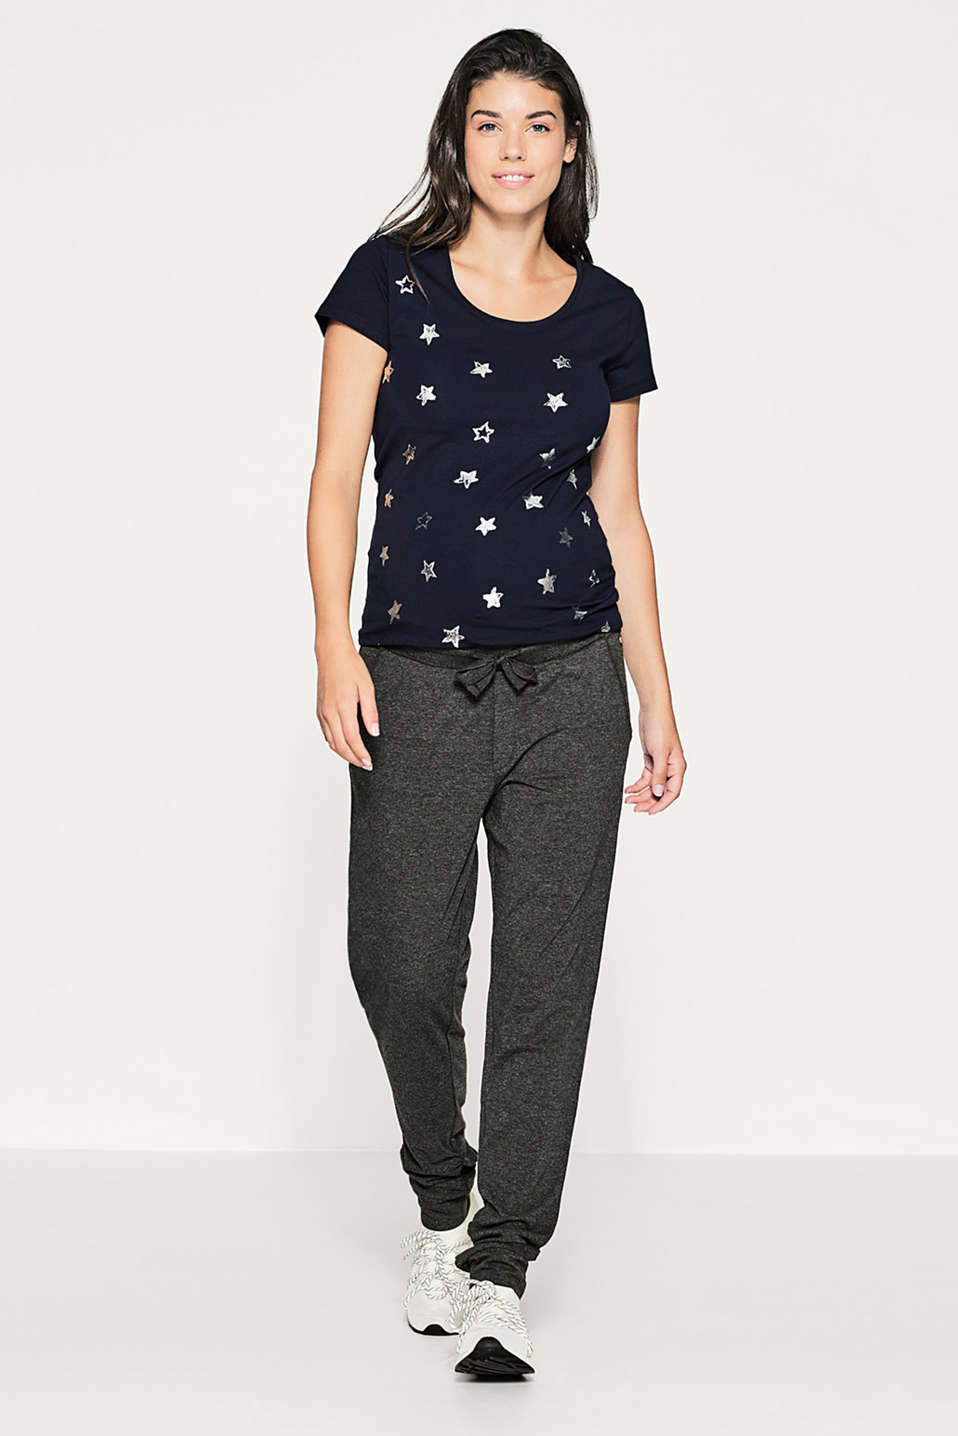 Stretch tee with foil print stars